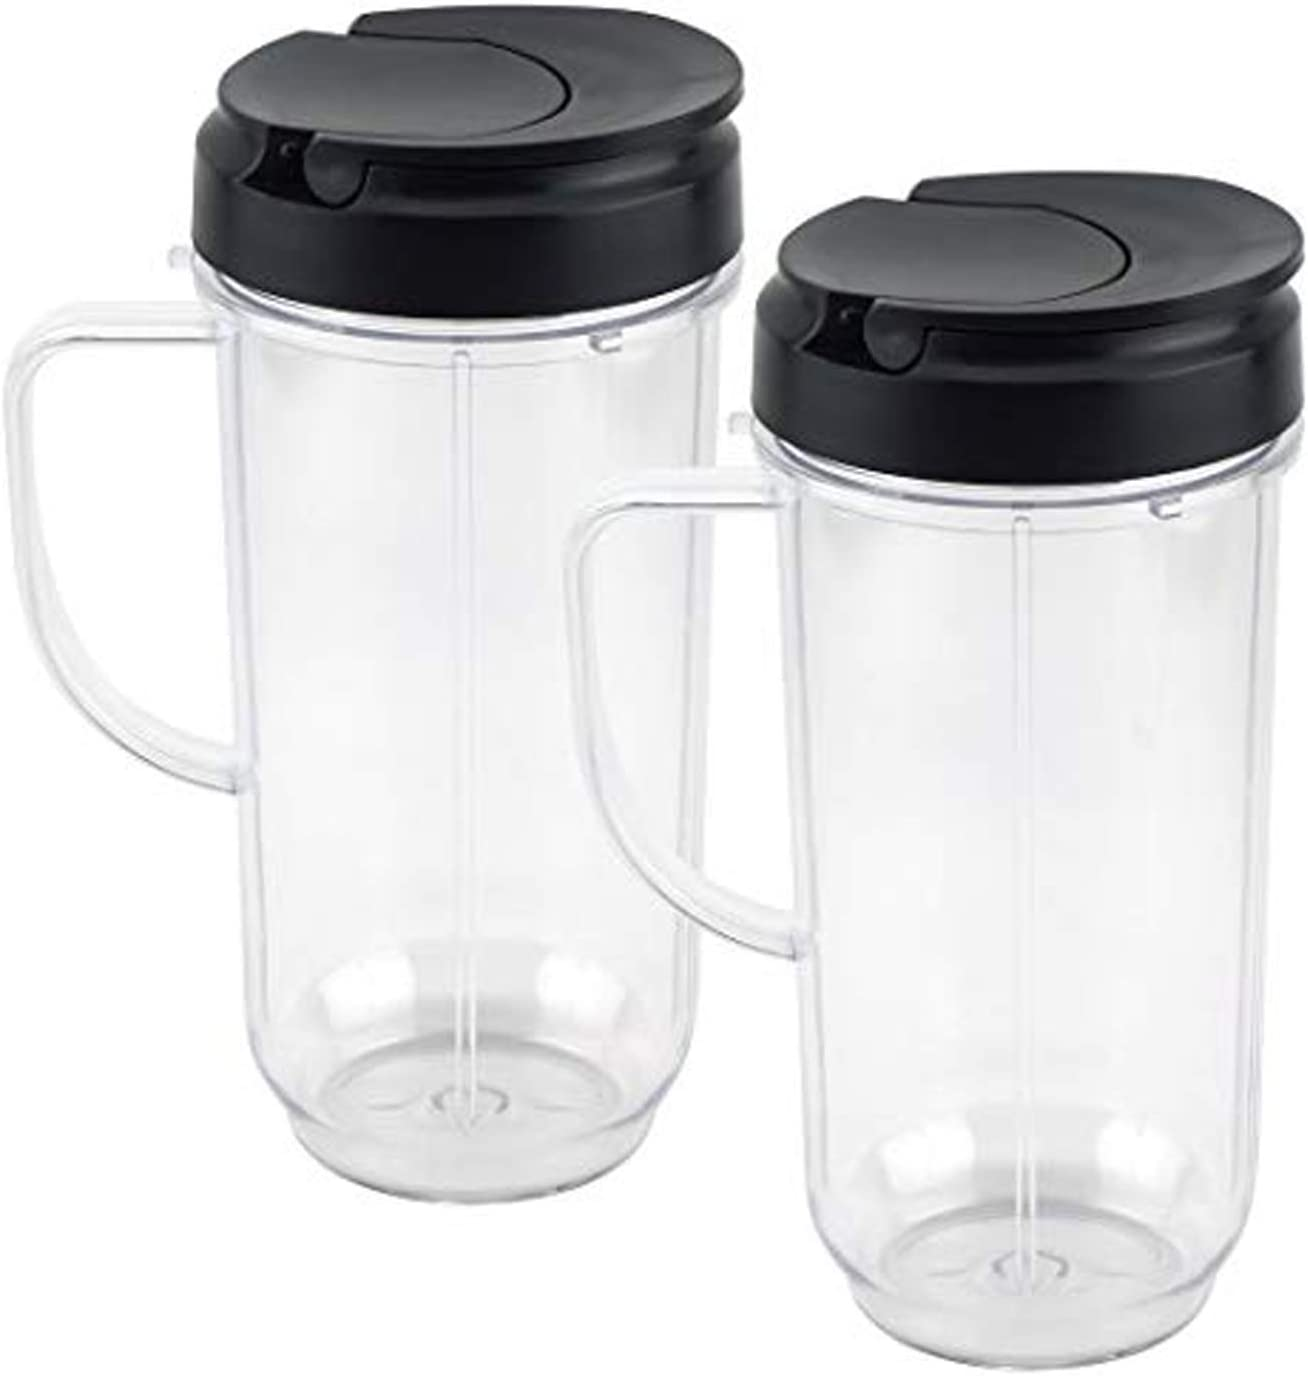 Tall 22oz Cup with Flip Top To-Go Lid Replacement Part Cup Mug with handle Compatible with 250w Magic.Bullet Mugs & Cups Blender Juicer Mixer by TOMOON, 2 Pack